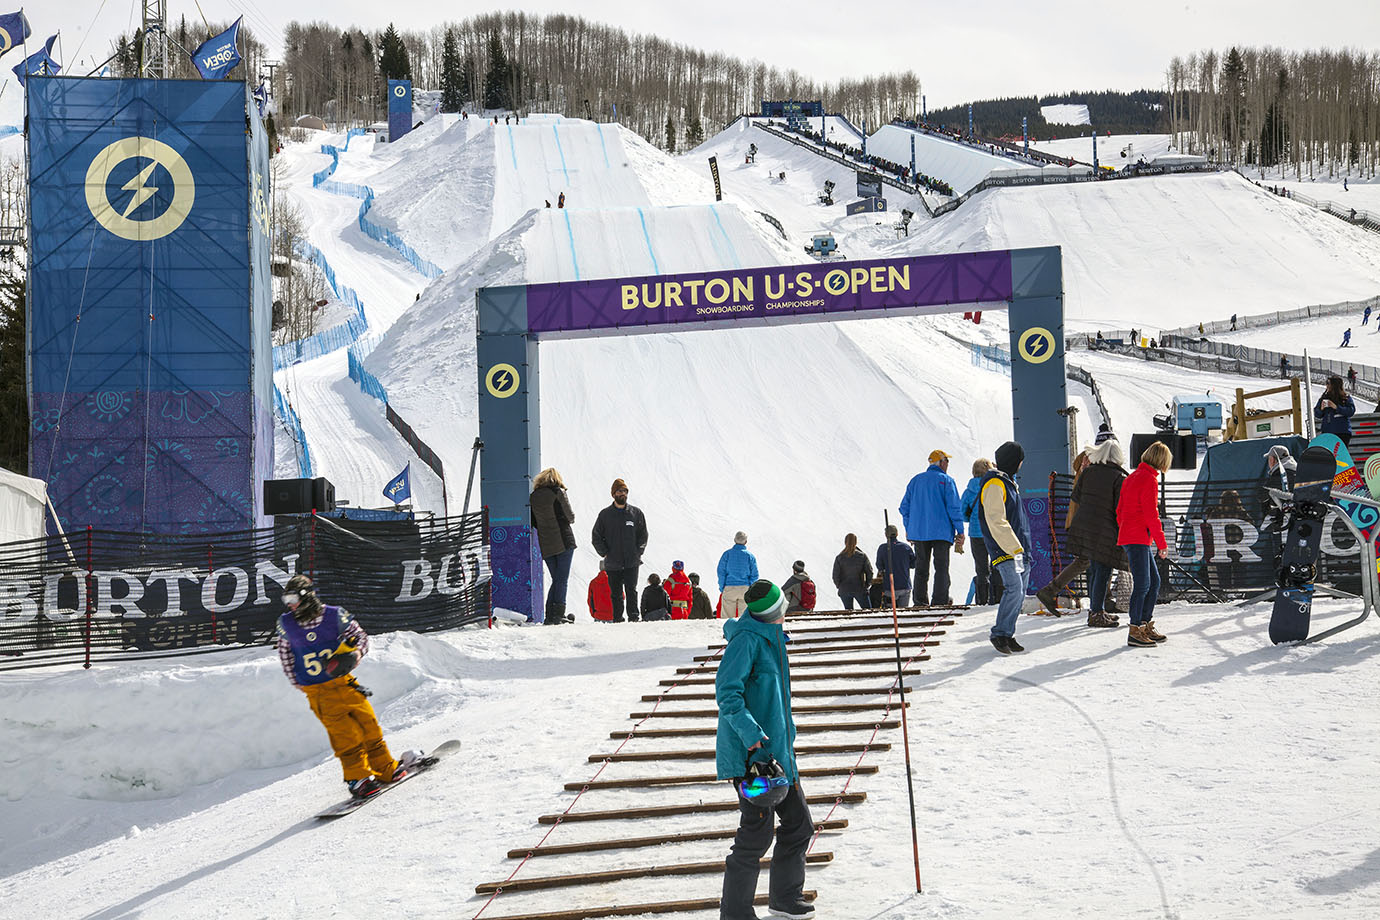 The U.S. Open features two events: Slopestyle and Superpipe. The course also features an athlete's lounge that, unlike other competitions, gave riders a premium view of both event sites.